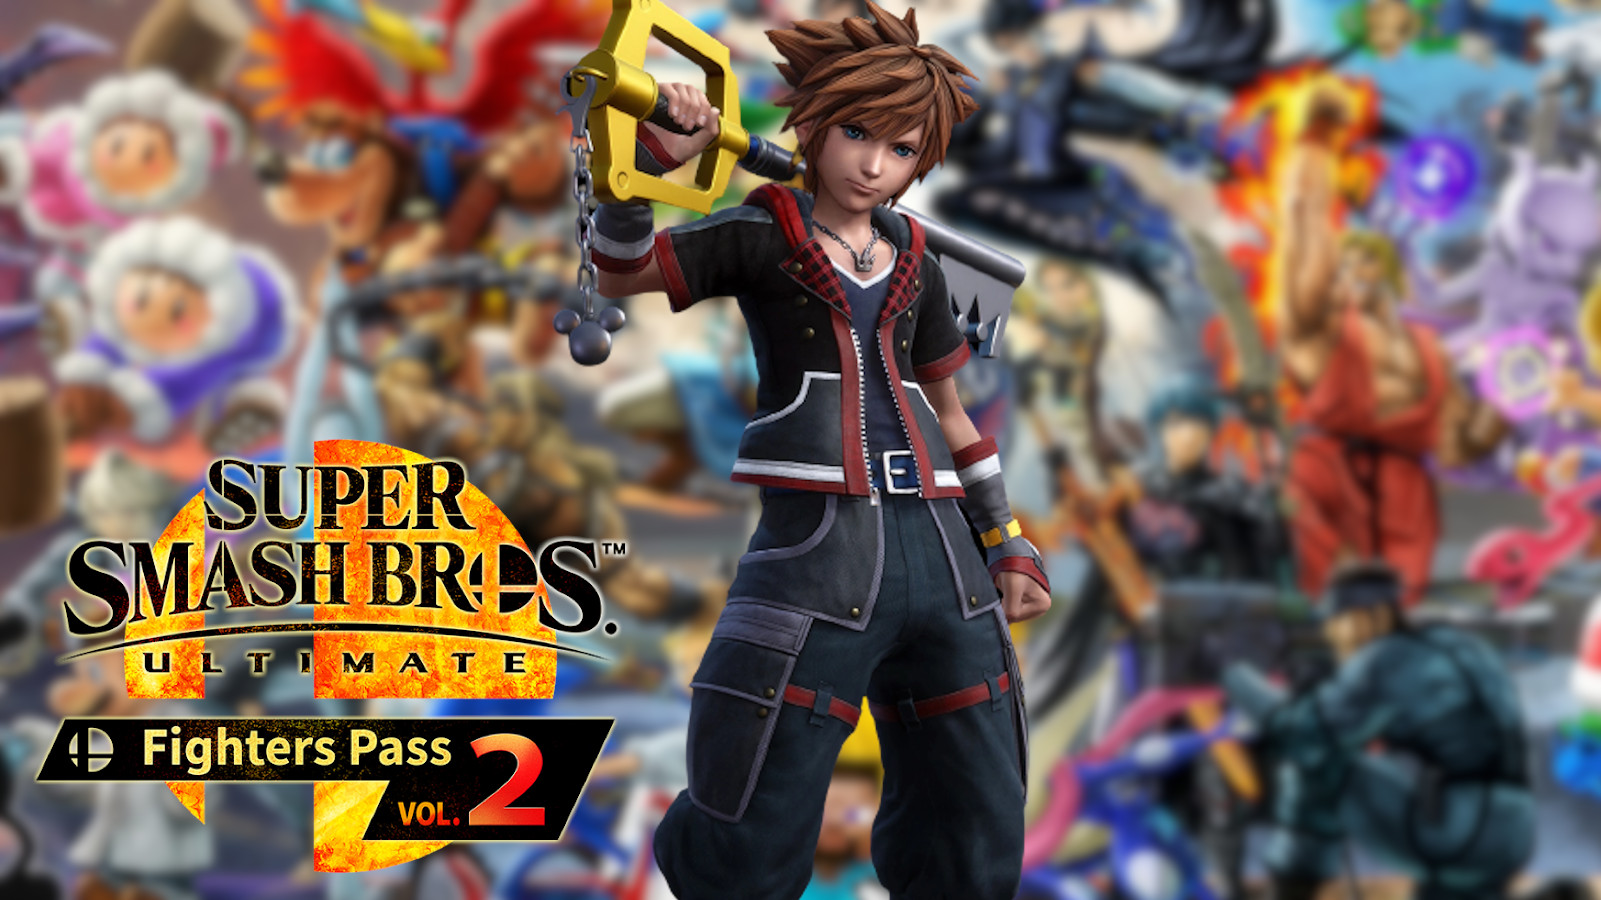 Sora from Kingdom Hearts in Smash Ultimate Fighters Pass Volume 2